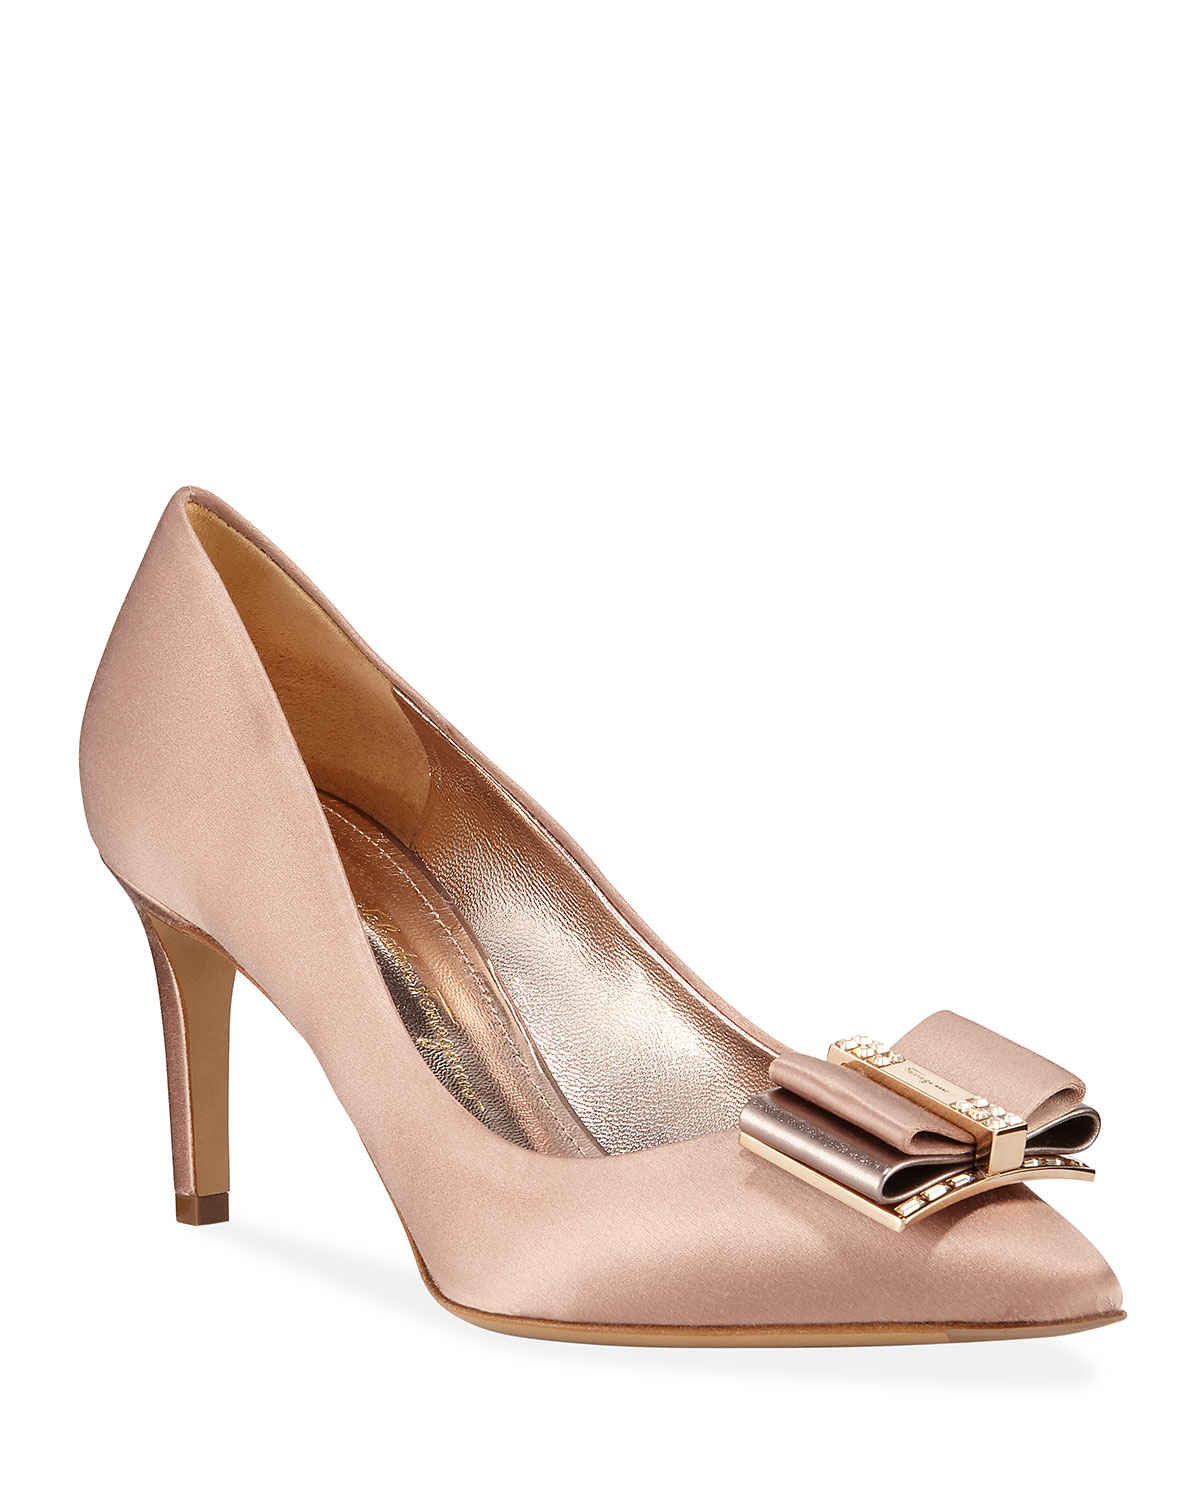 Zeri Satin Embellished Pumps, Blush